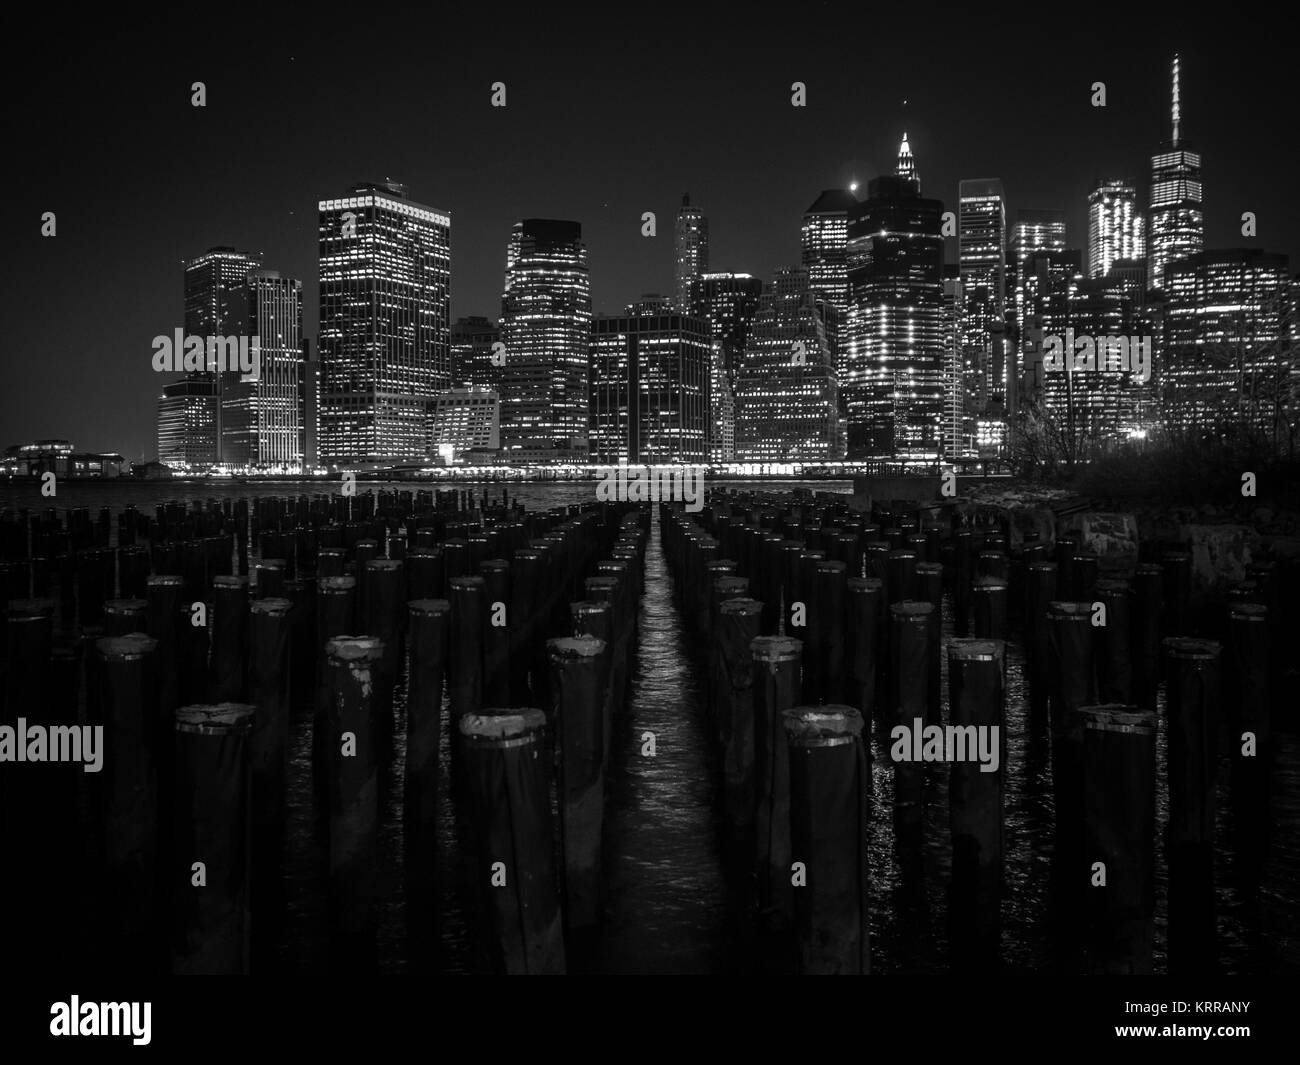 NEW YORK NIGHT PHOTOGRAPHY ROM OLD DOCKS BROOKLYN  LIGHTS BLACK AND WHITE Stock Photo